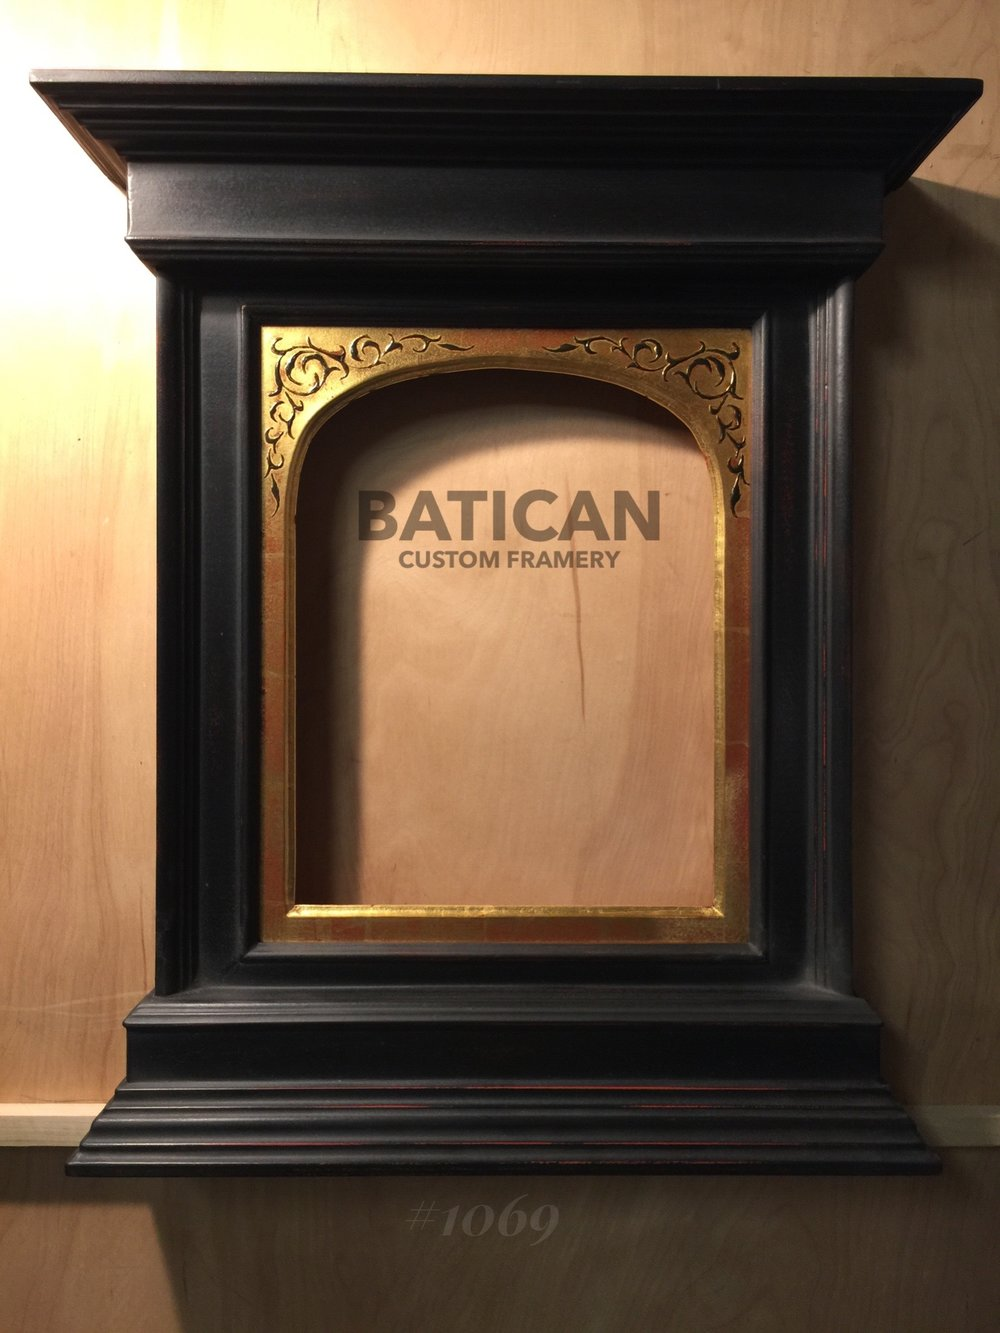 Arched Tabernacle Frame with Black Pastiglia (sold)